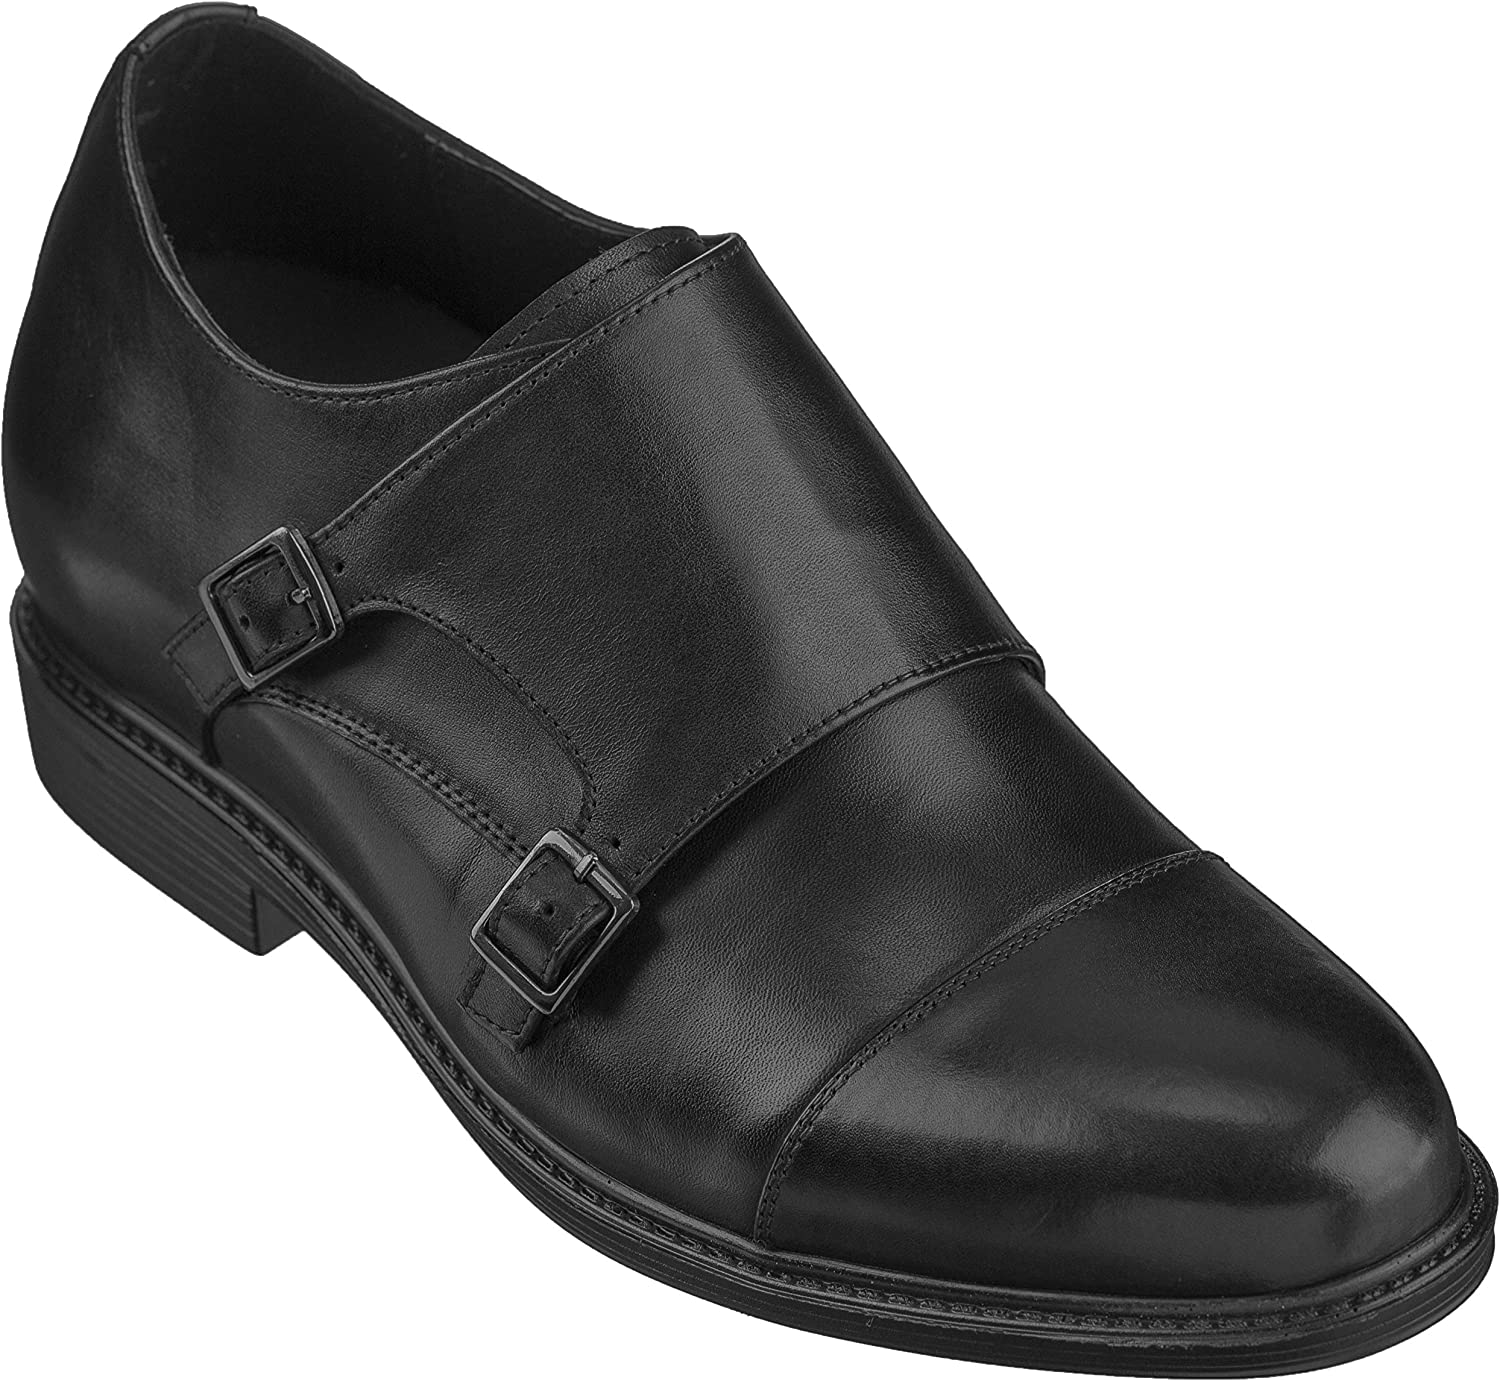 CALTO Men's Invisible Height Increasing Elevator shoes - Black Premium Leather Lace-up Formal Loafers - 3 Inches Taller - T5325